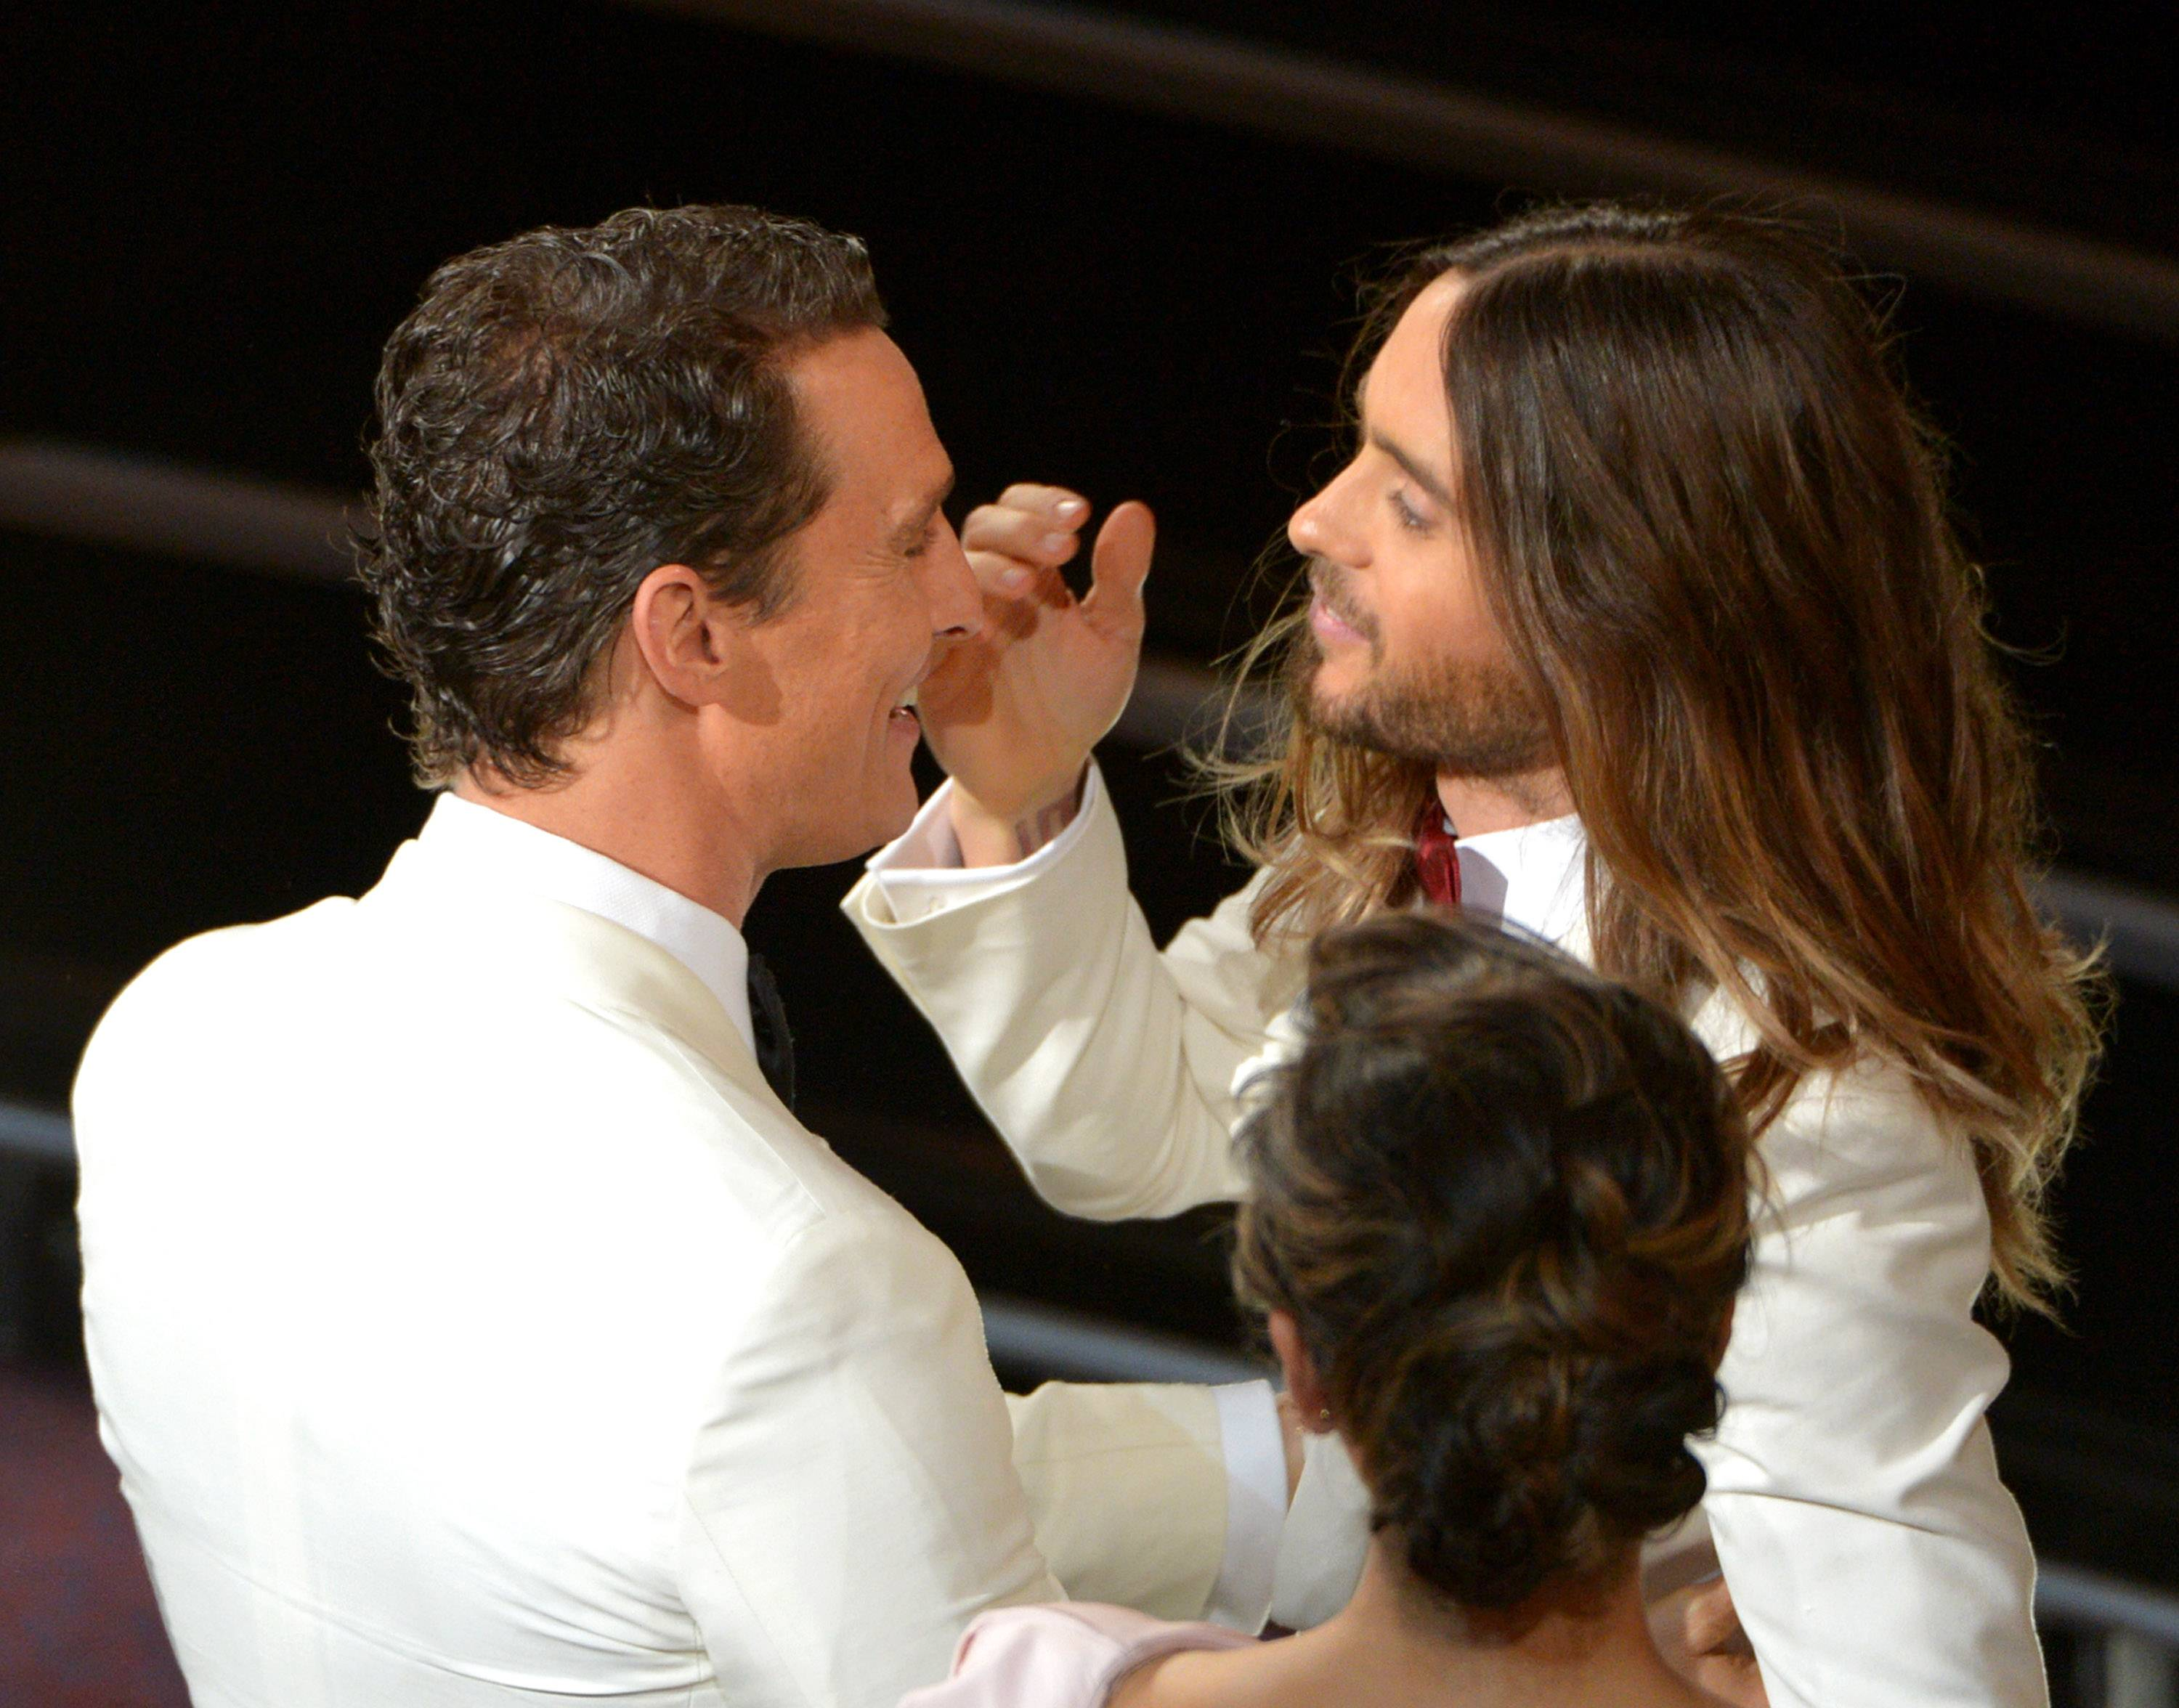 Matthew McConaughey, left, congratulates Jared Leto in the audience during the Oscars.